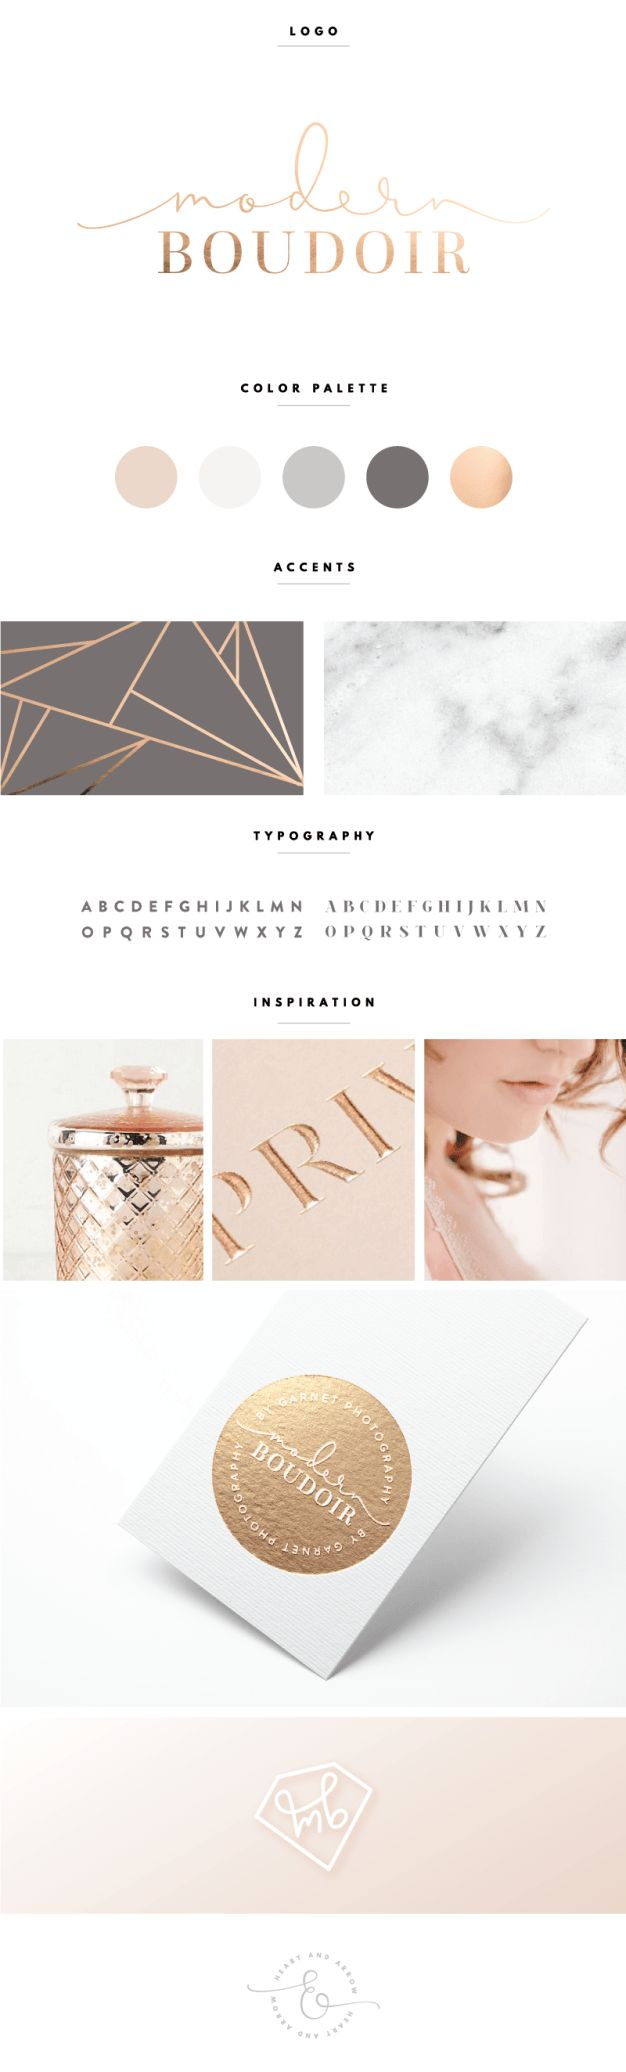 Rose Gold and Gray Brand Design | by Heart & Arrow // blog design brand board